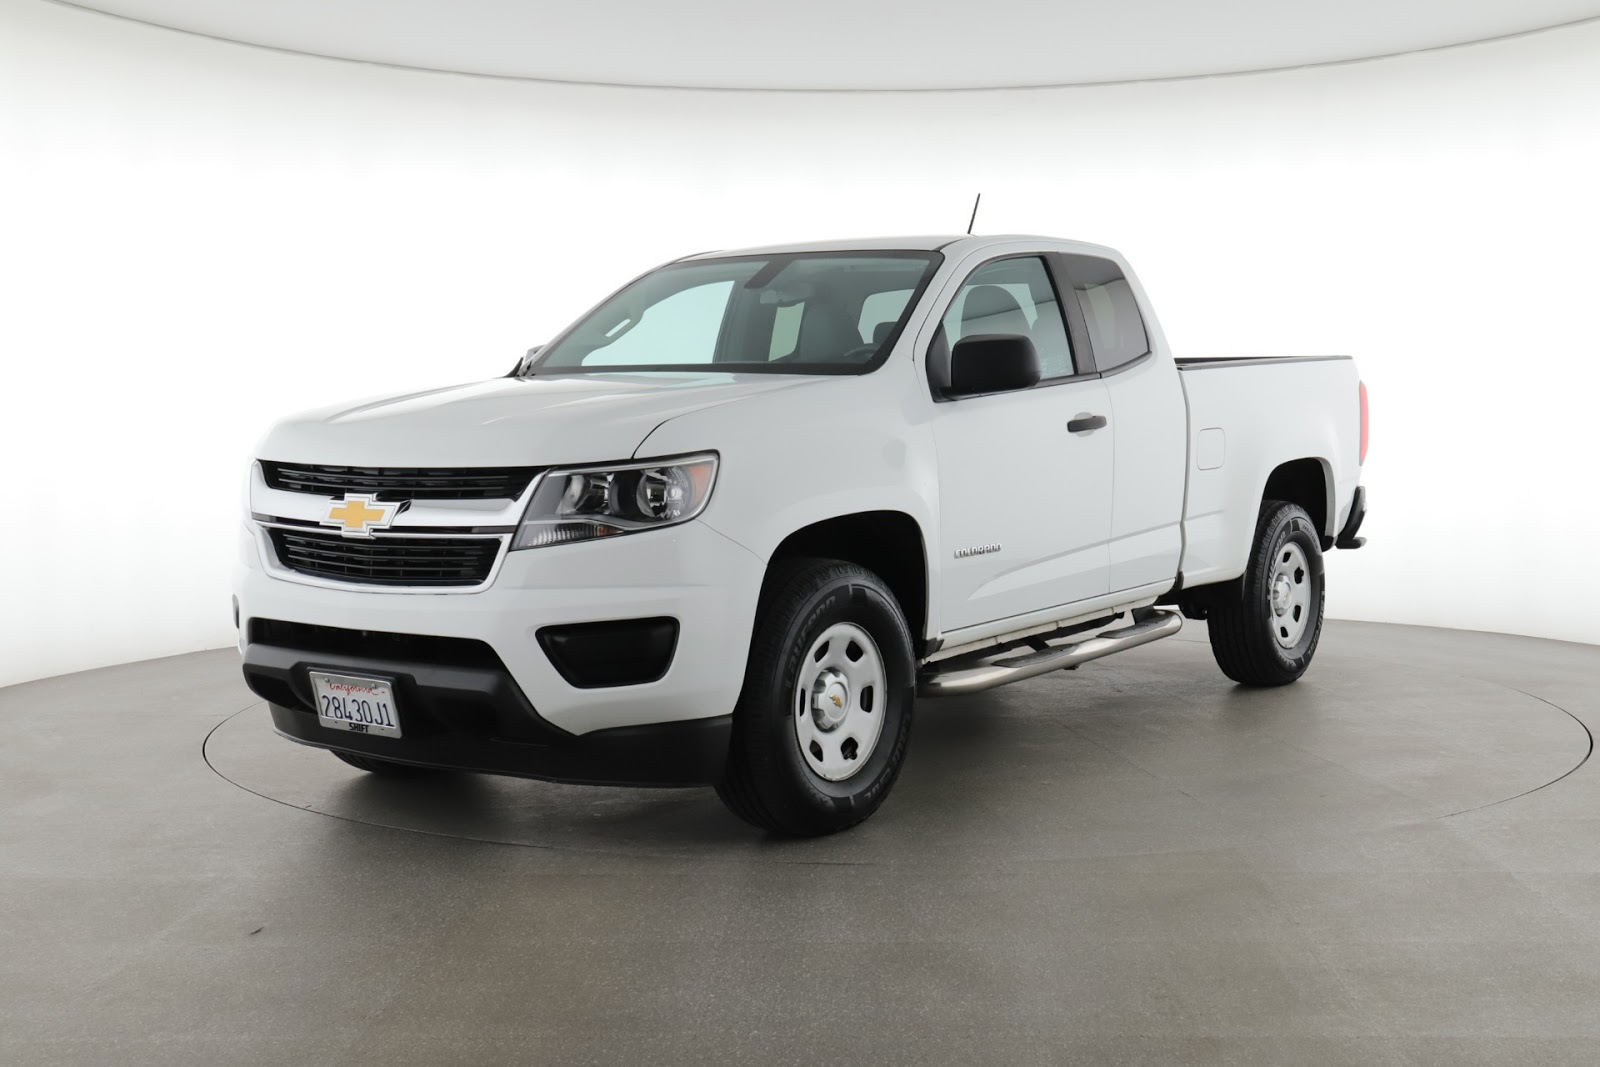 2015 Chevrolet Colorado 2WD WT (from $18,000)